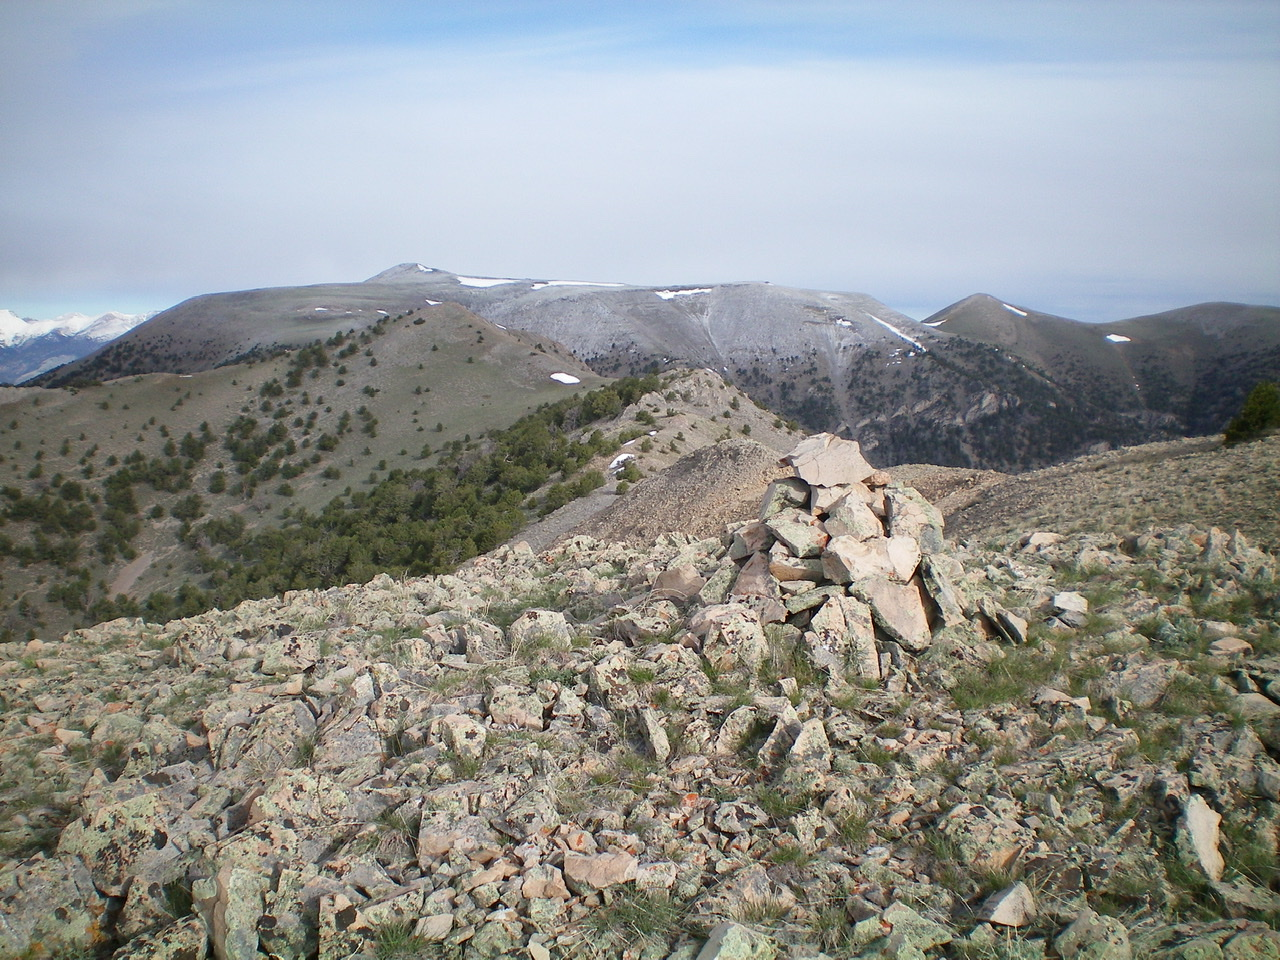 The summit cairn atop Gallagher Peak, looking west. Peak 9877 is the bare hump just left of center. Copper Mountain (10,303 feet) is behind it in the distance. Livingston Douglas Photo